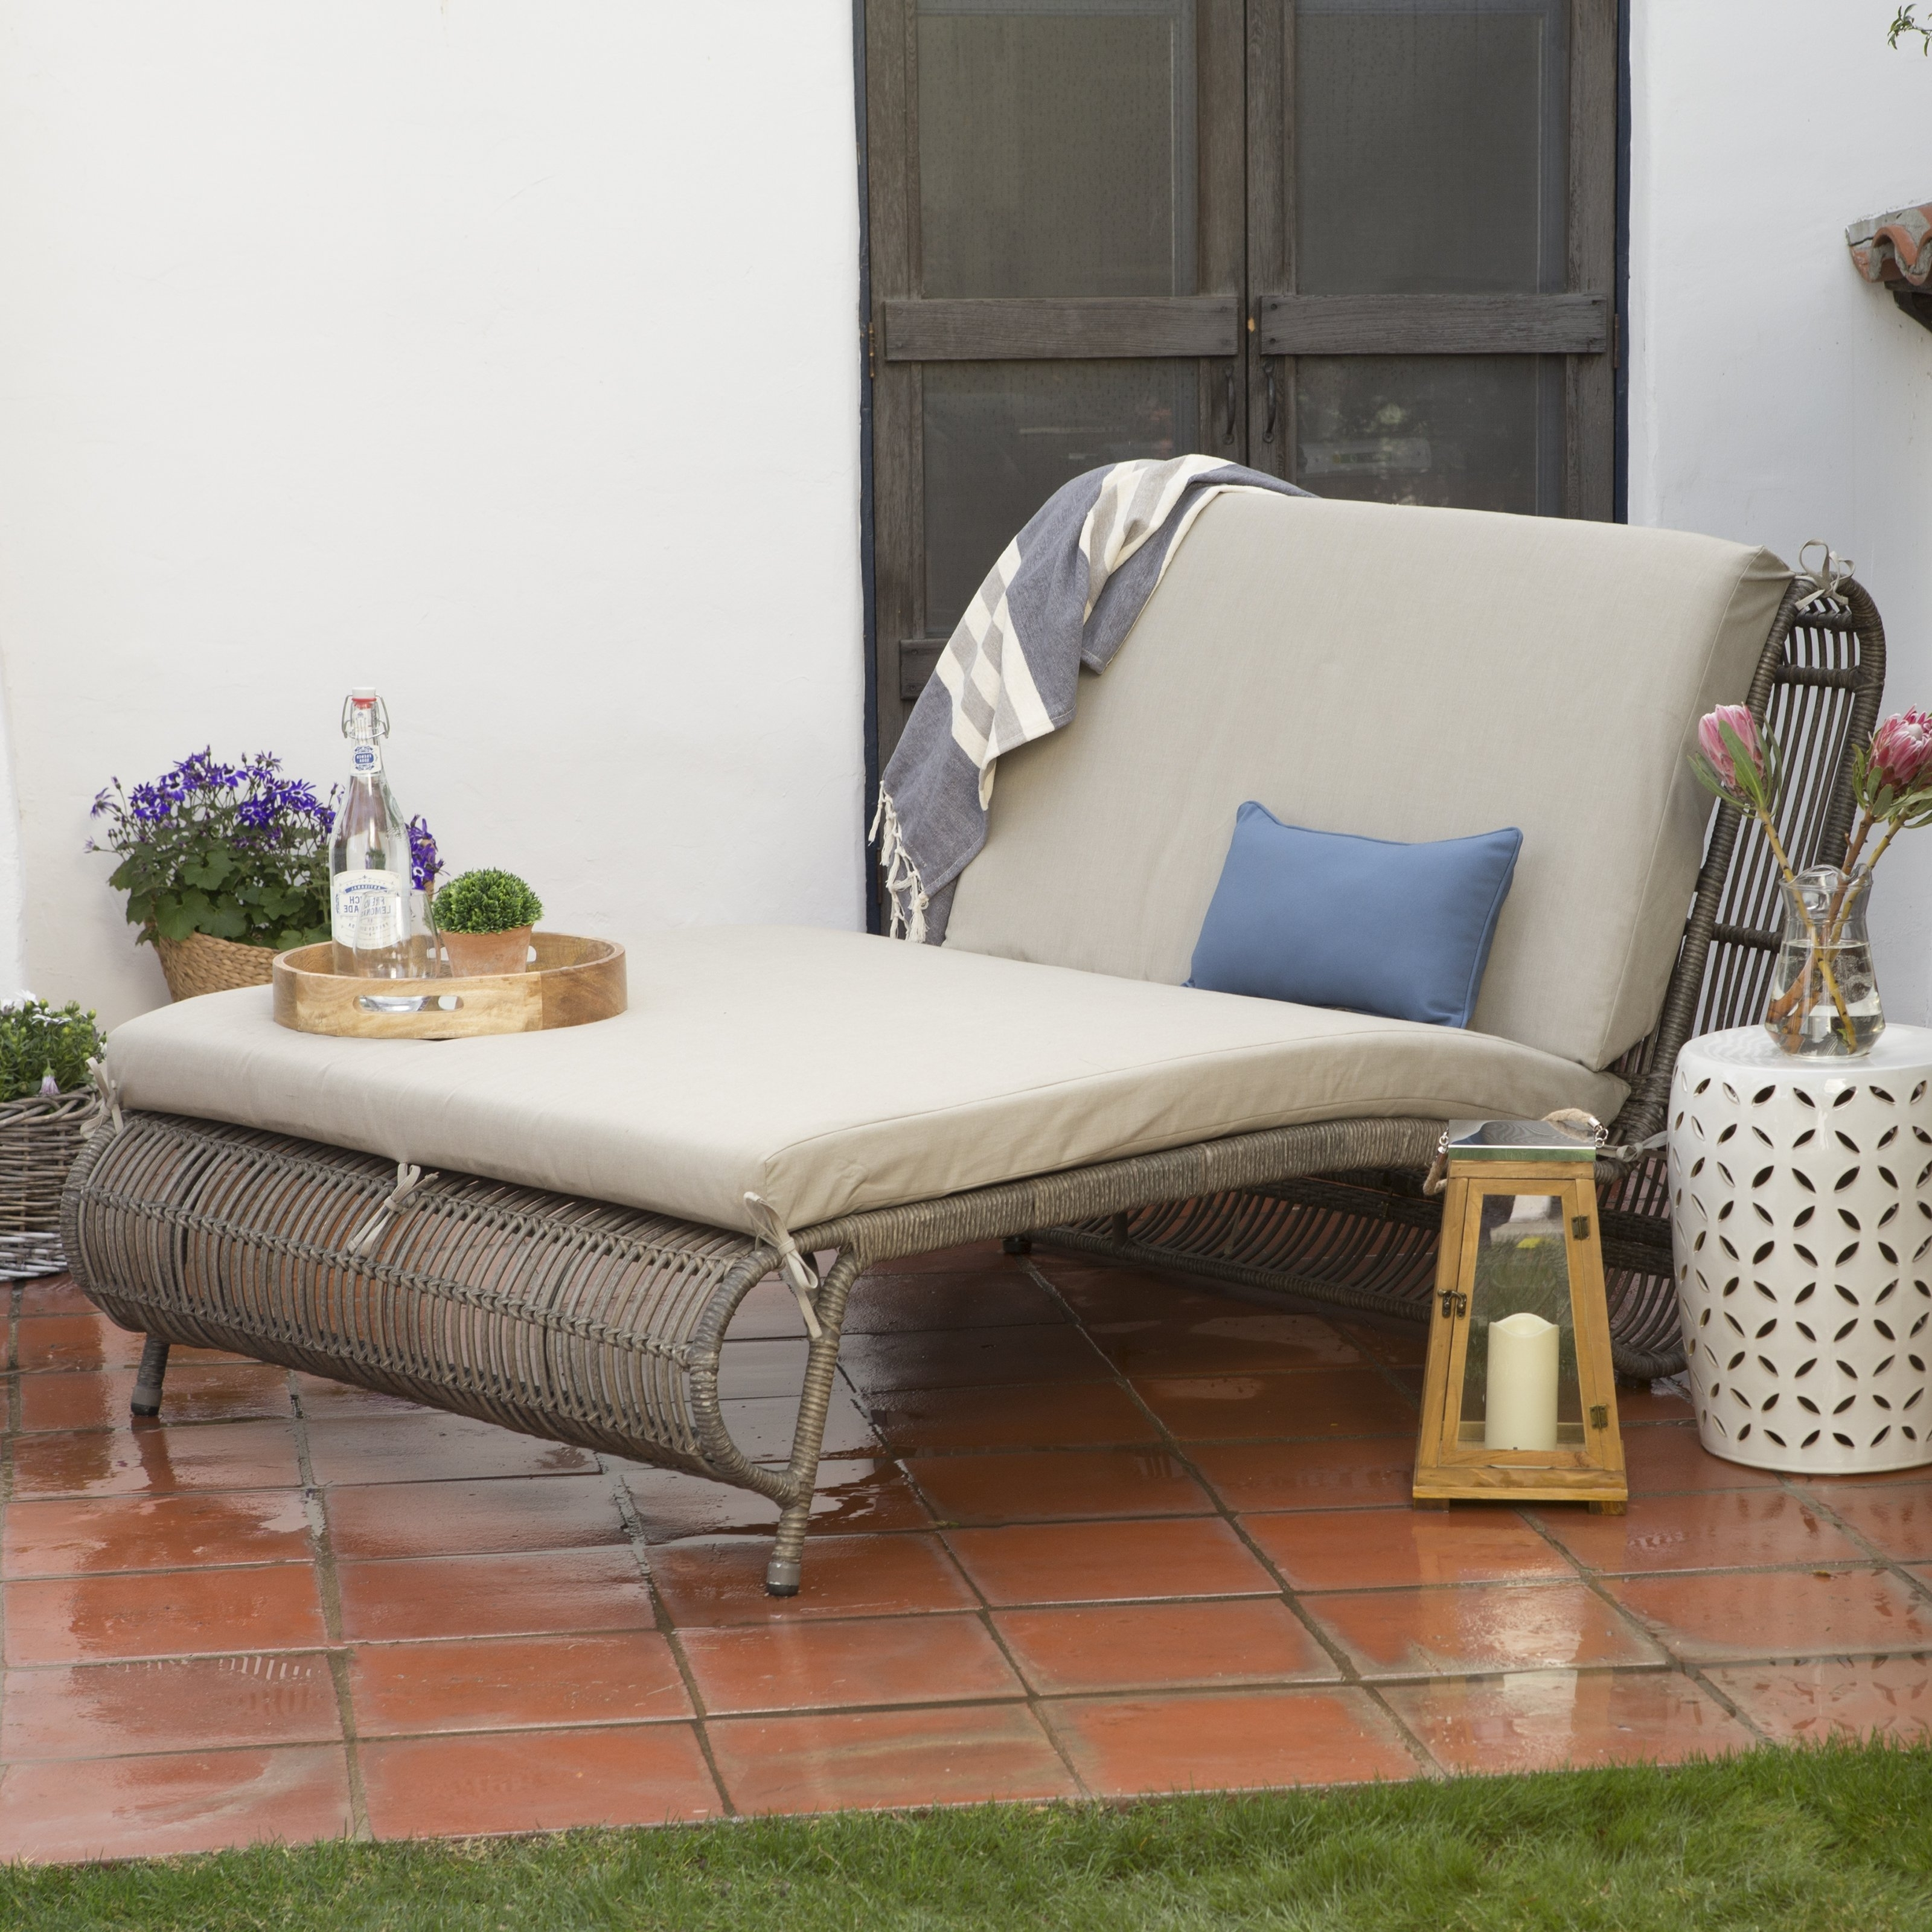 Famous Double Chaise Lounges For Living Room Pertaining To Beautiful Chaise Lounge Chairs Outdoor (44 Photos) (View 7 of 15)